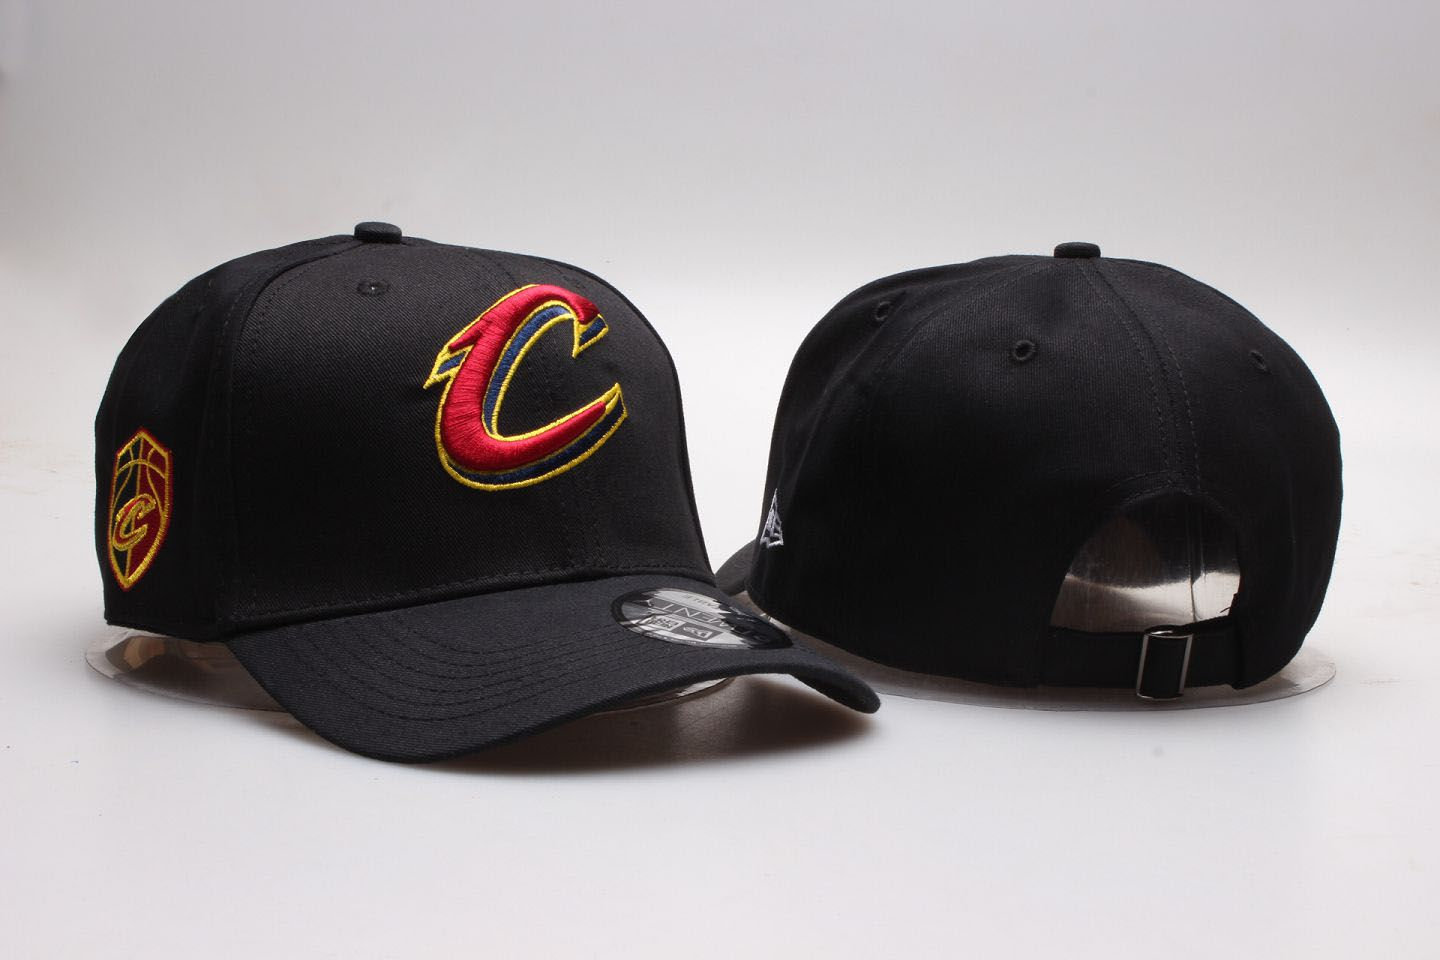 NBA Cleveland Cavaliers Snapback hat 201811257